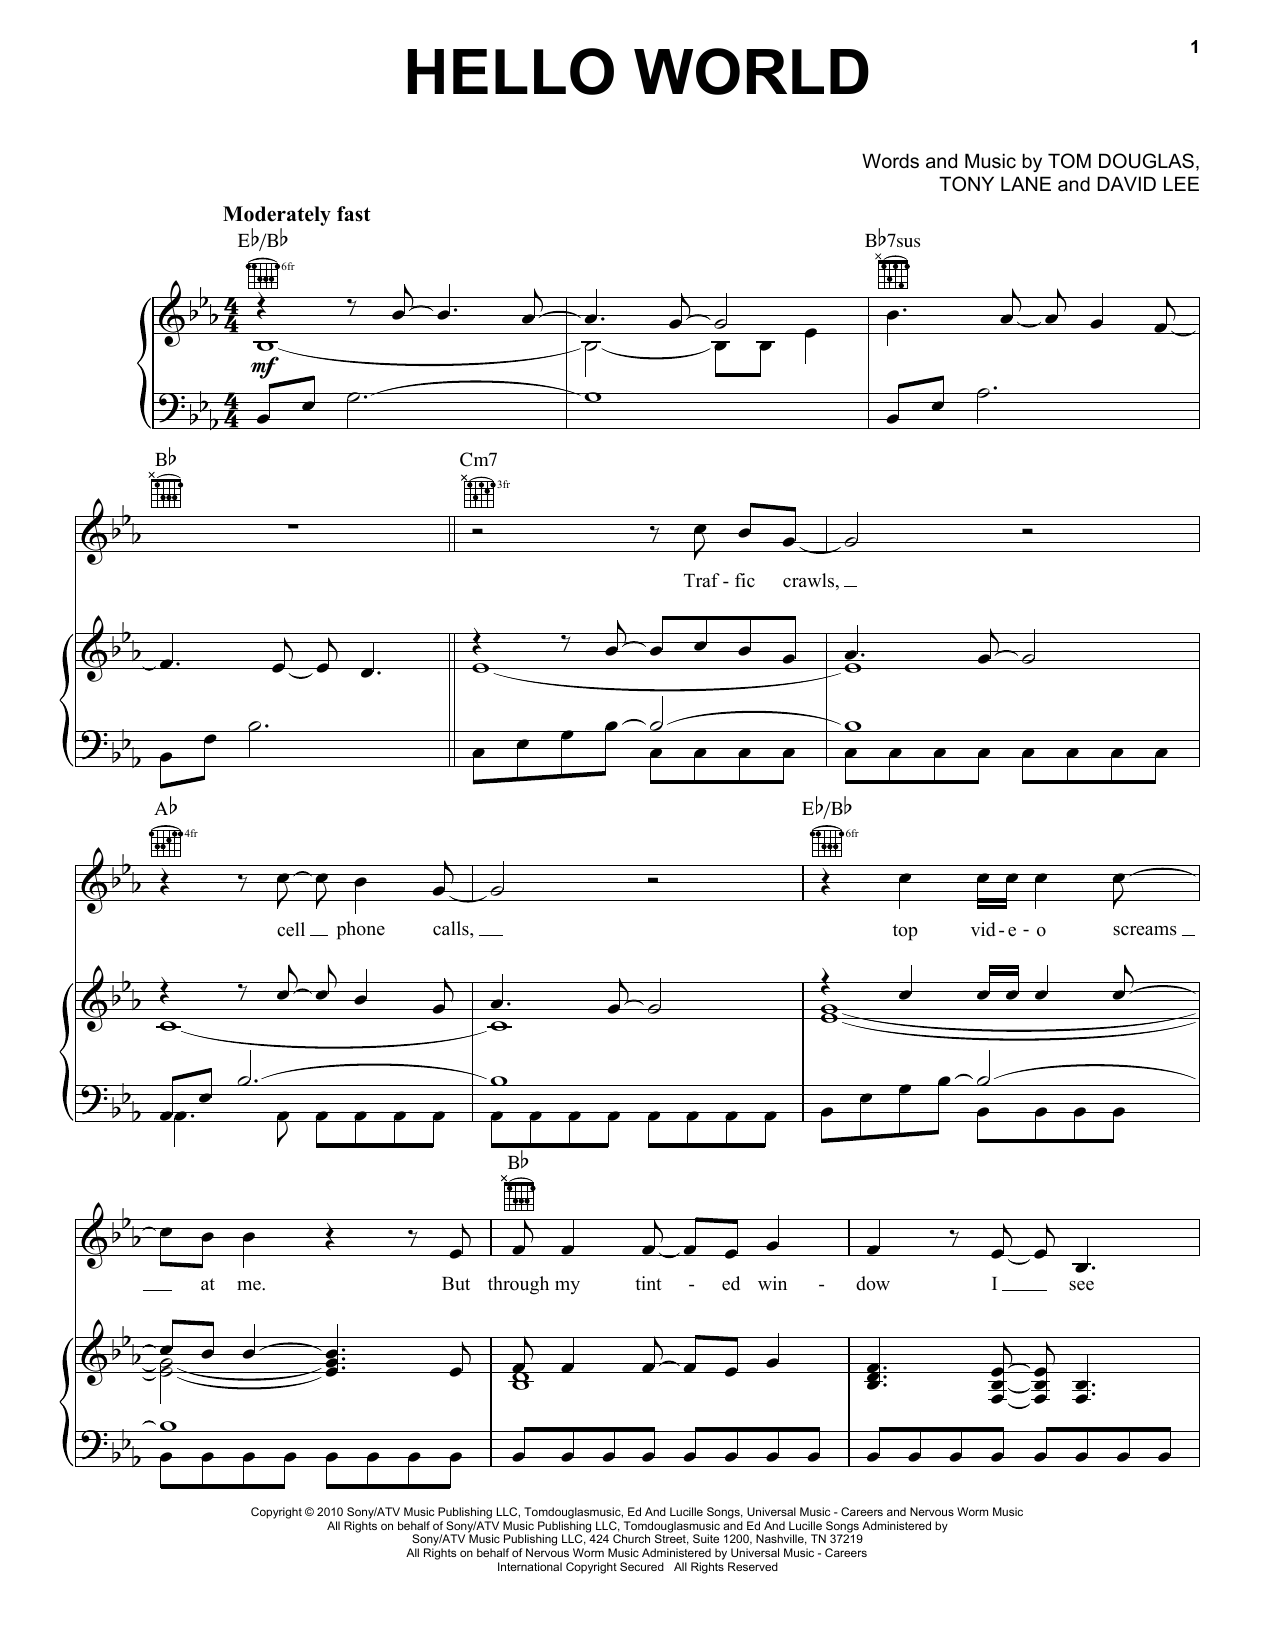 Hello World sheet music for voice, piano or guitar by Tony Lane